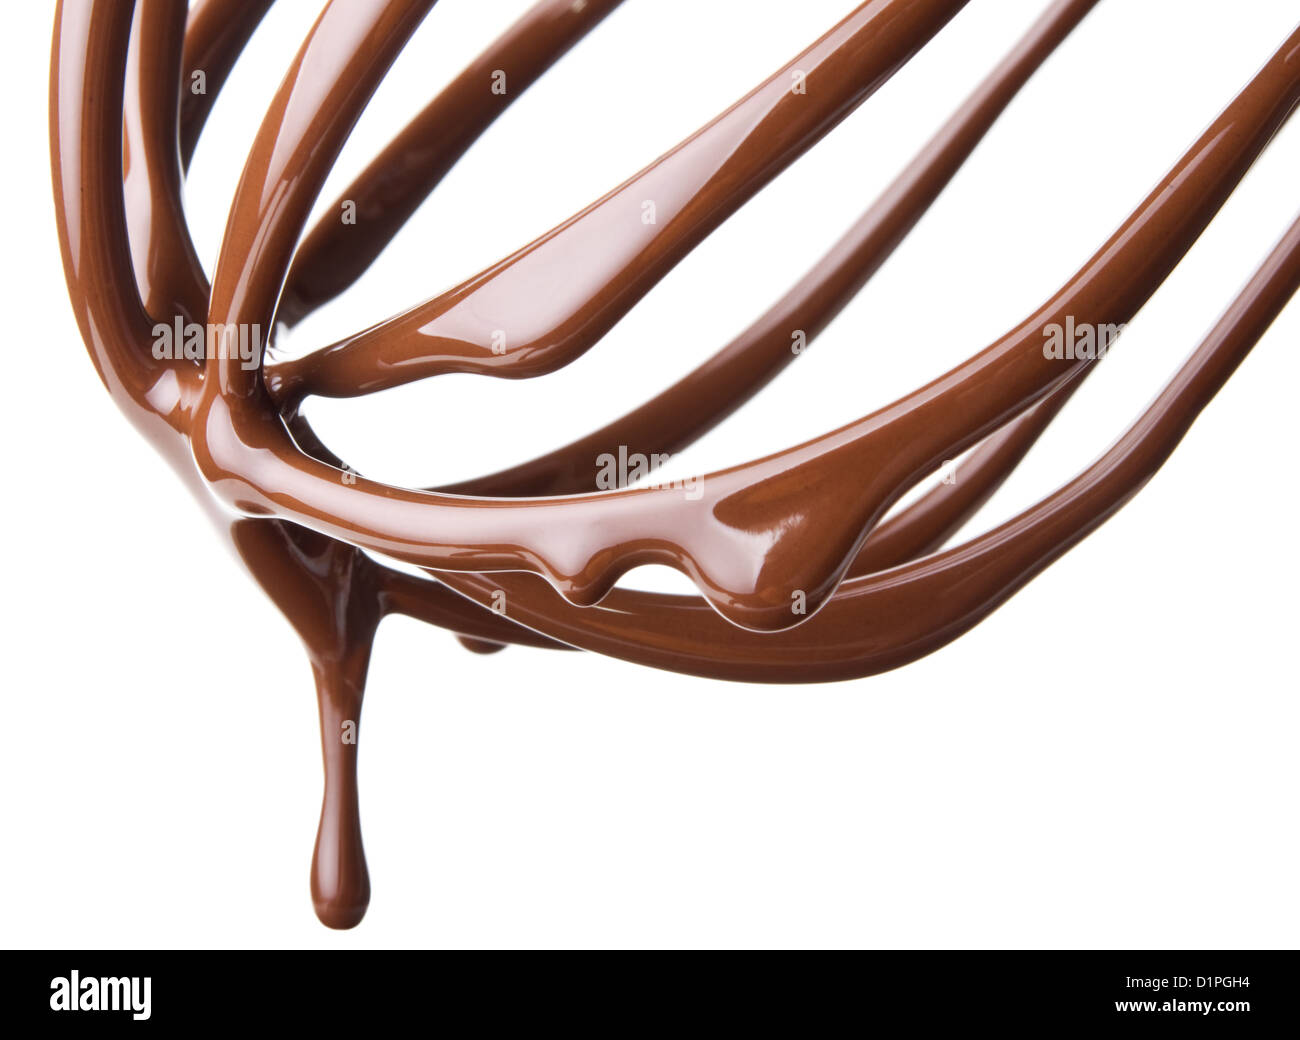 whisk with melted chocolate over white background - Stock Image